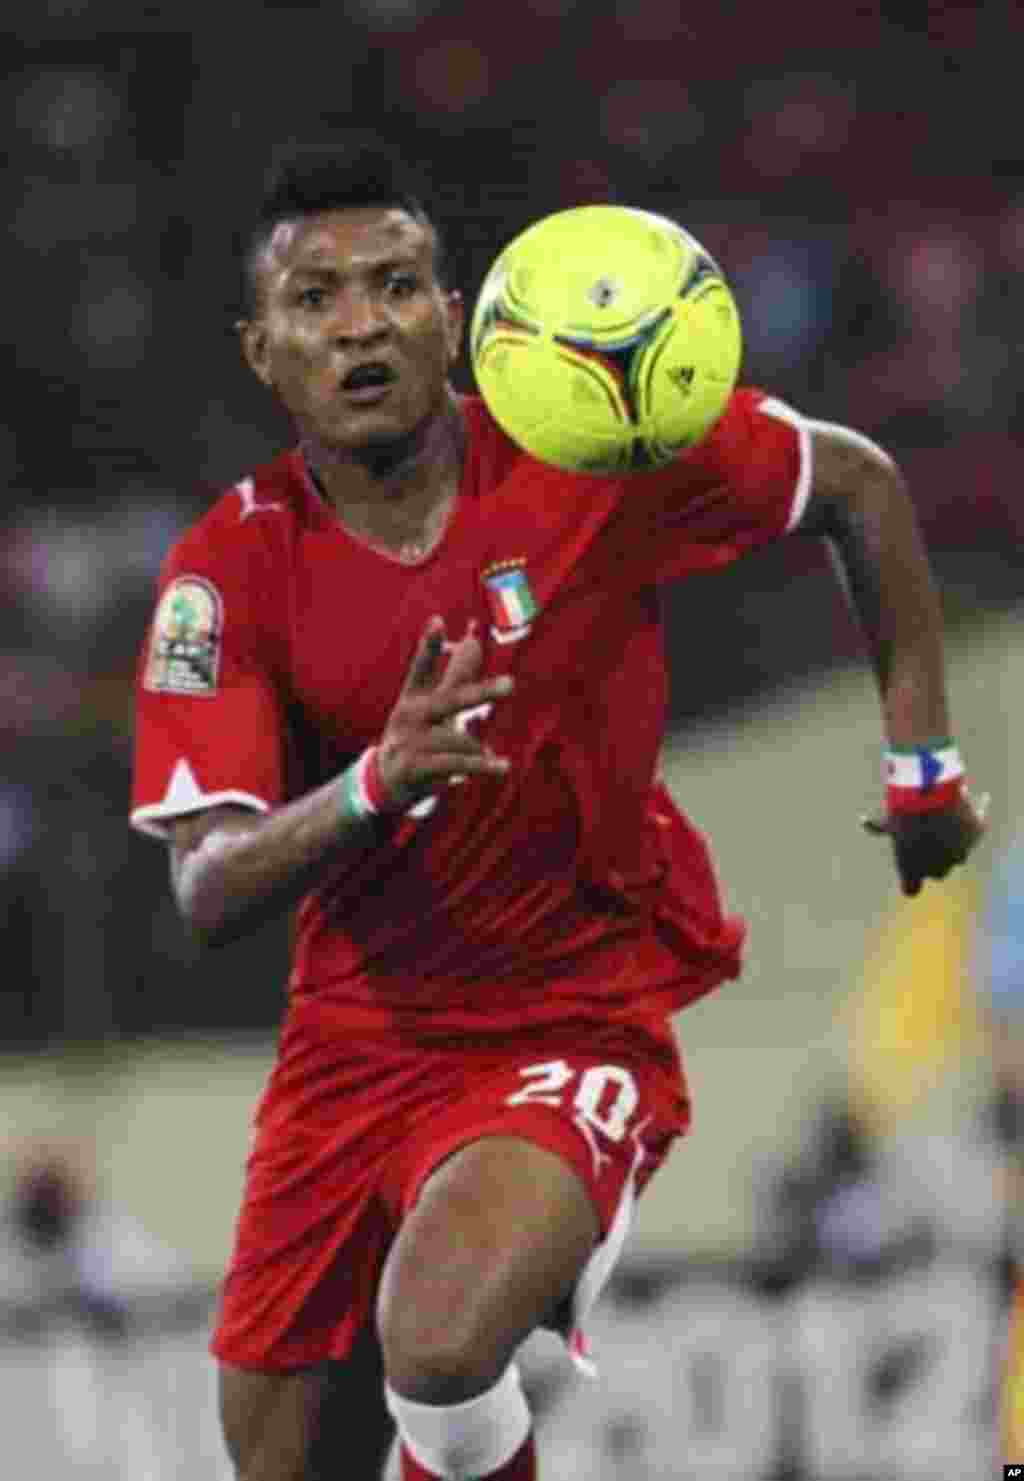 Bladimir Ekoedo of Equatorial Guinea runs after the ball during their African Nations Cup soccer match against Zambia in Malabo January 29, 2012.